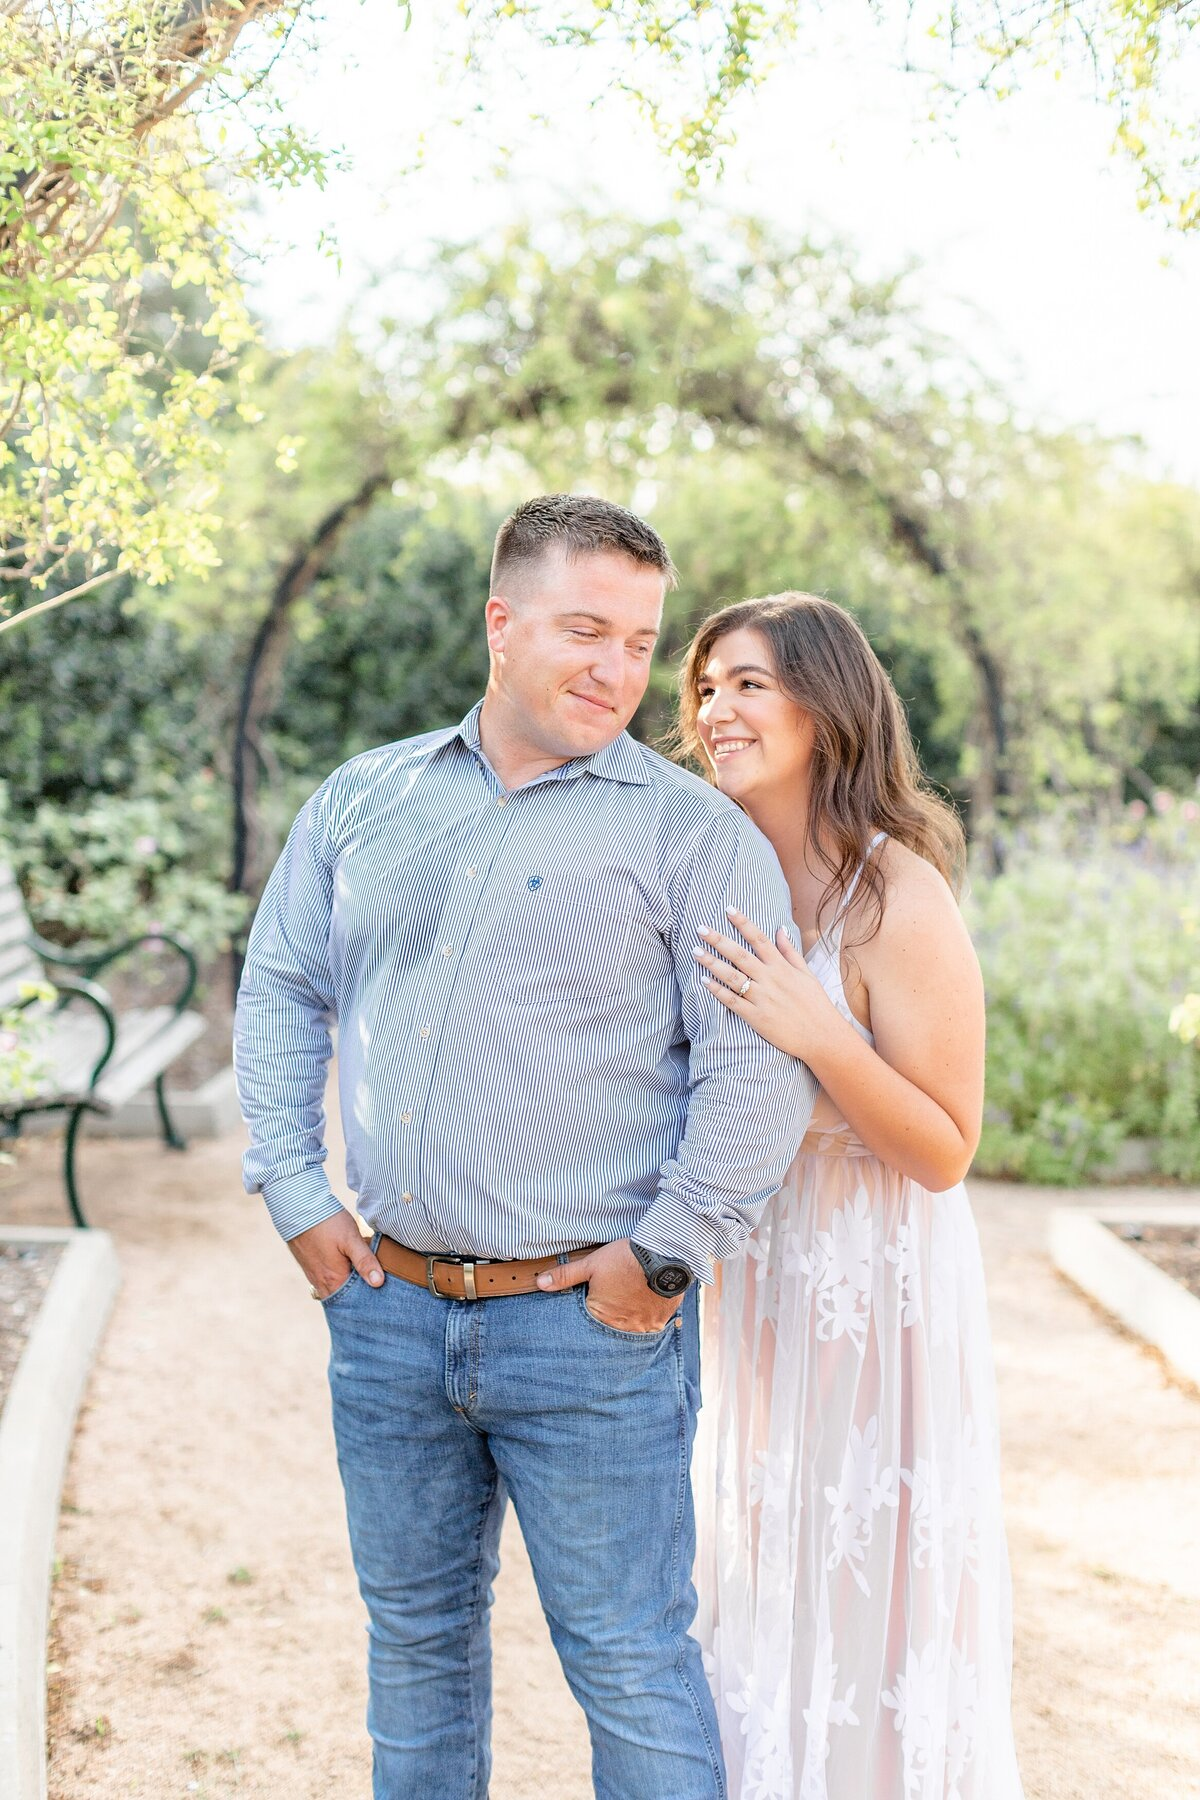 McGovern Centennial Gardens Engagement Photography Bright Airy Couple